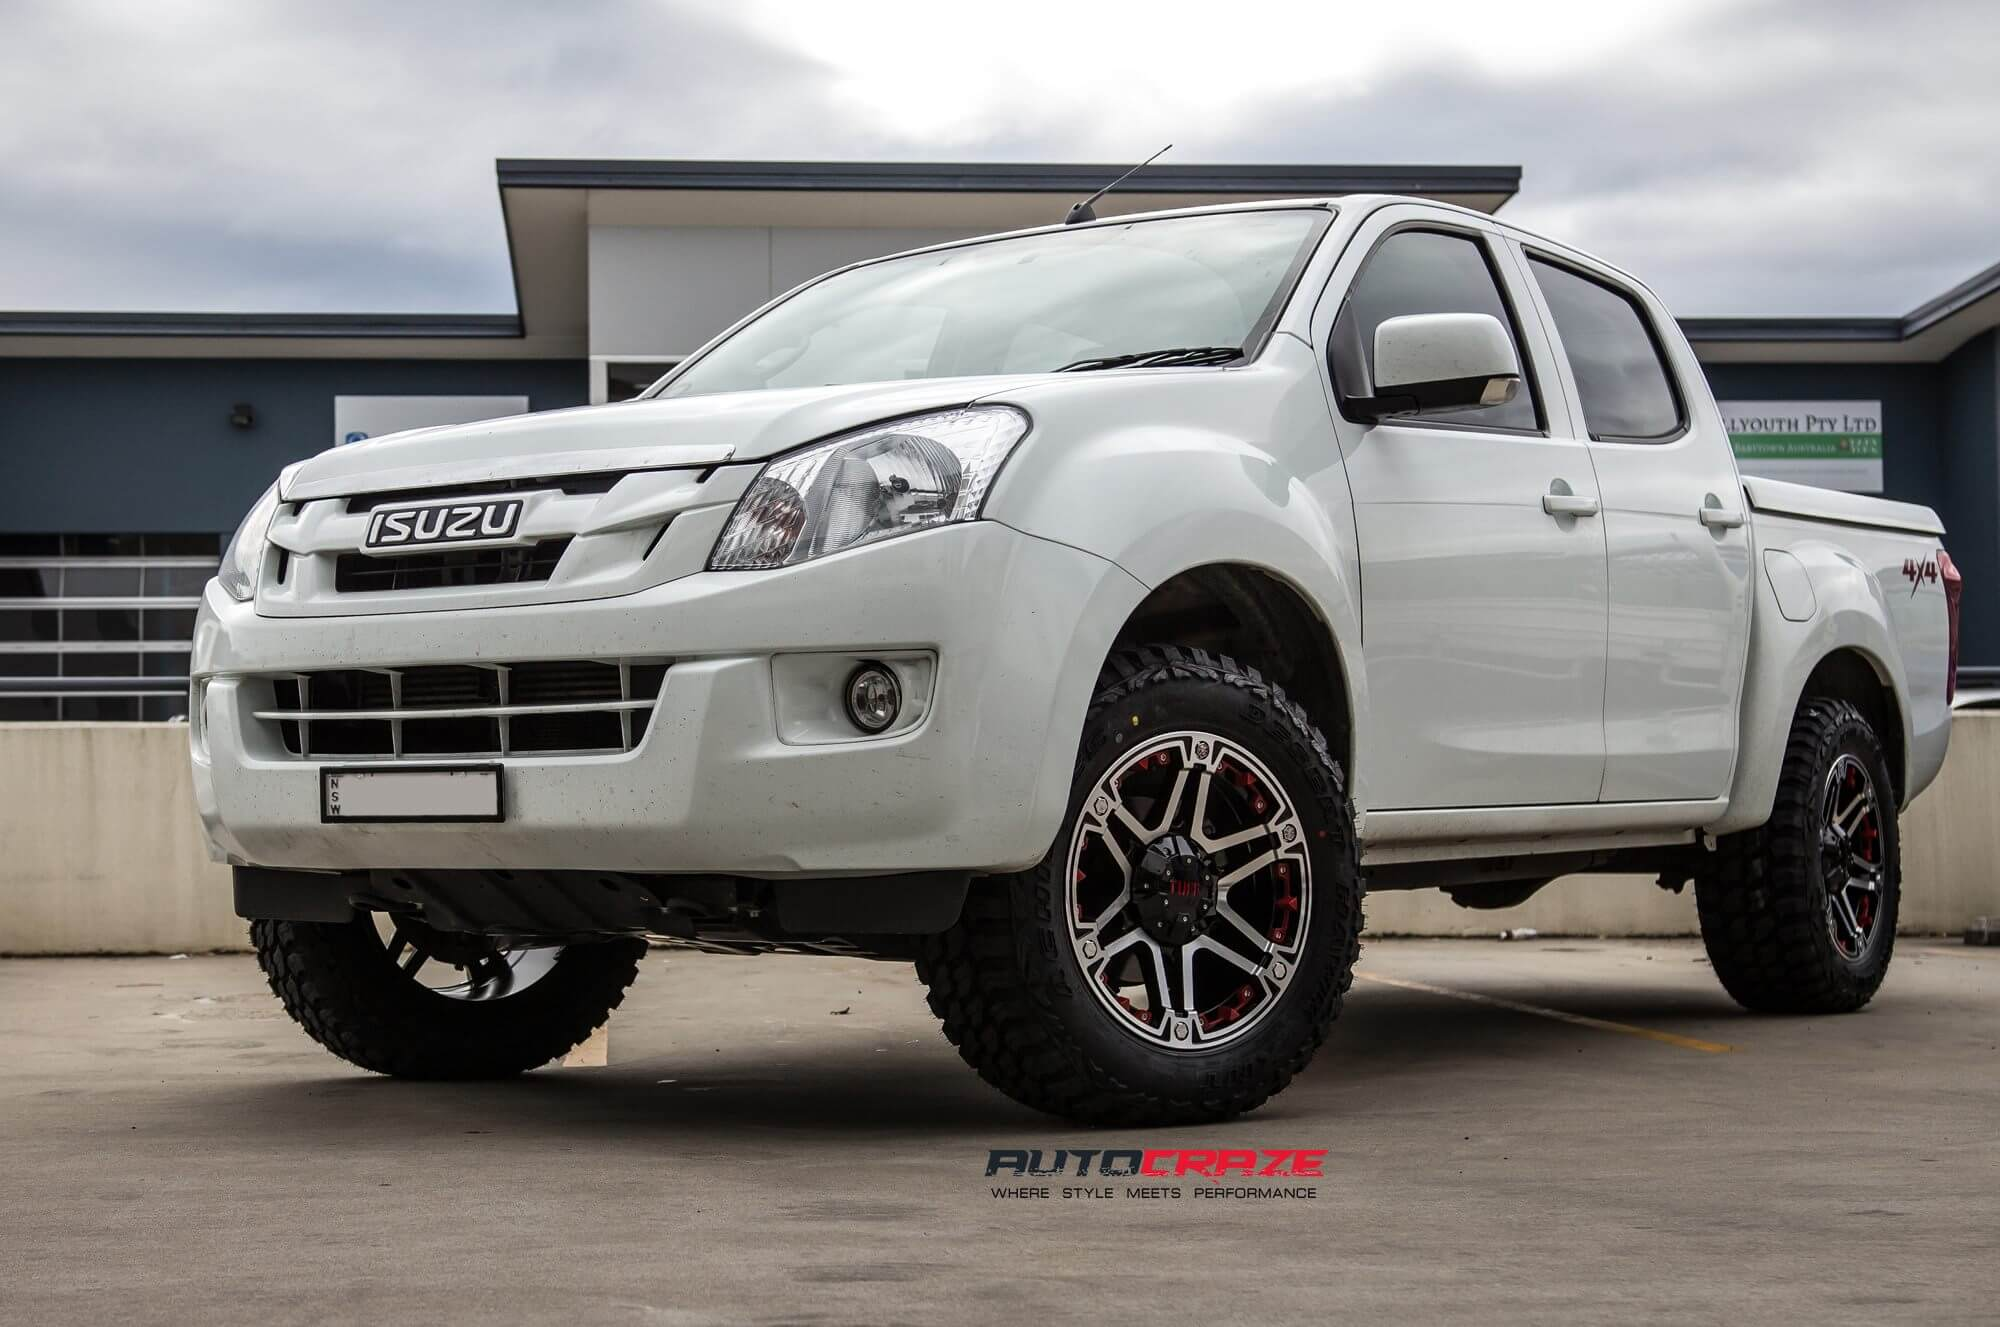 isuzu dmax wheels dmax alloy rims and tyres for sale. Black Bedroom Furniture Sets. Home Design Ideas